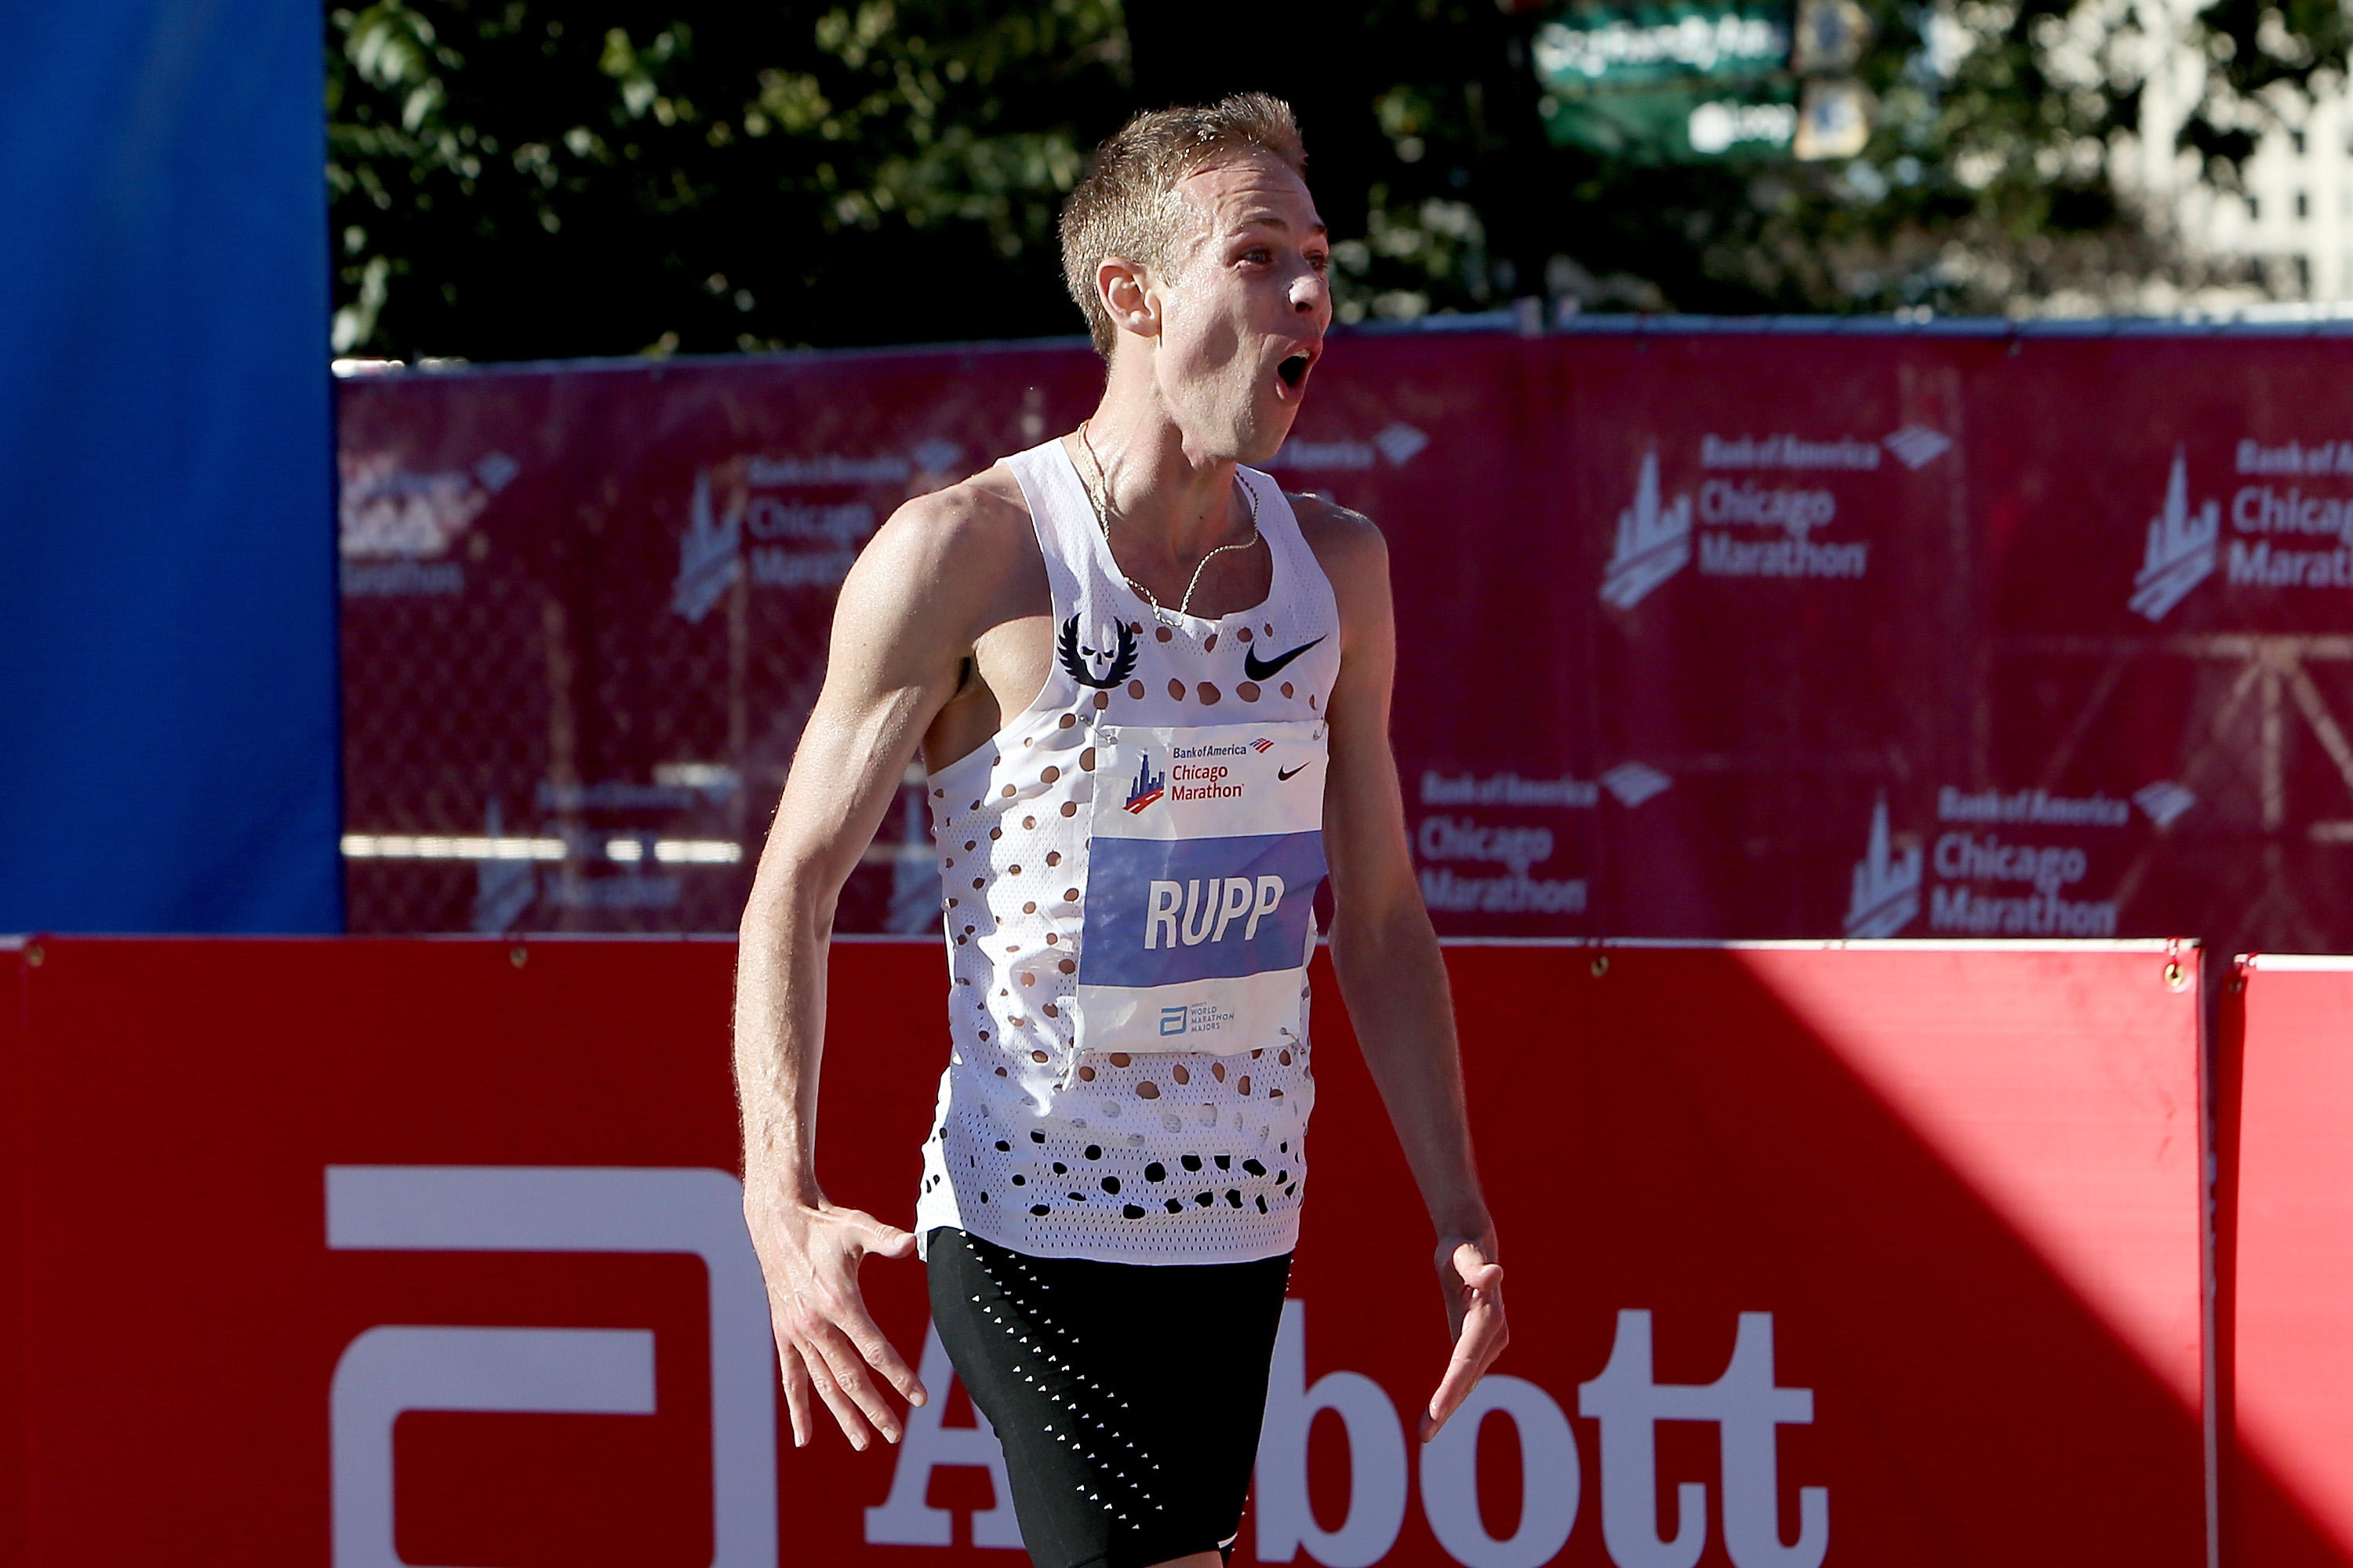 Chicago Marathon: Galen Rupp becomes first American to win since 2002